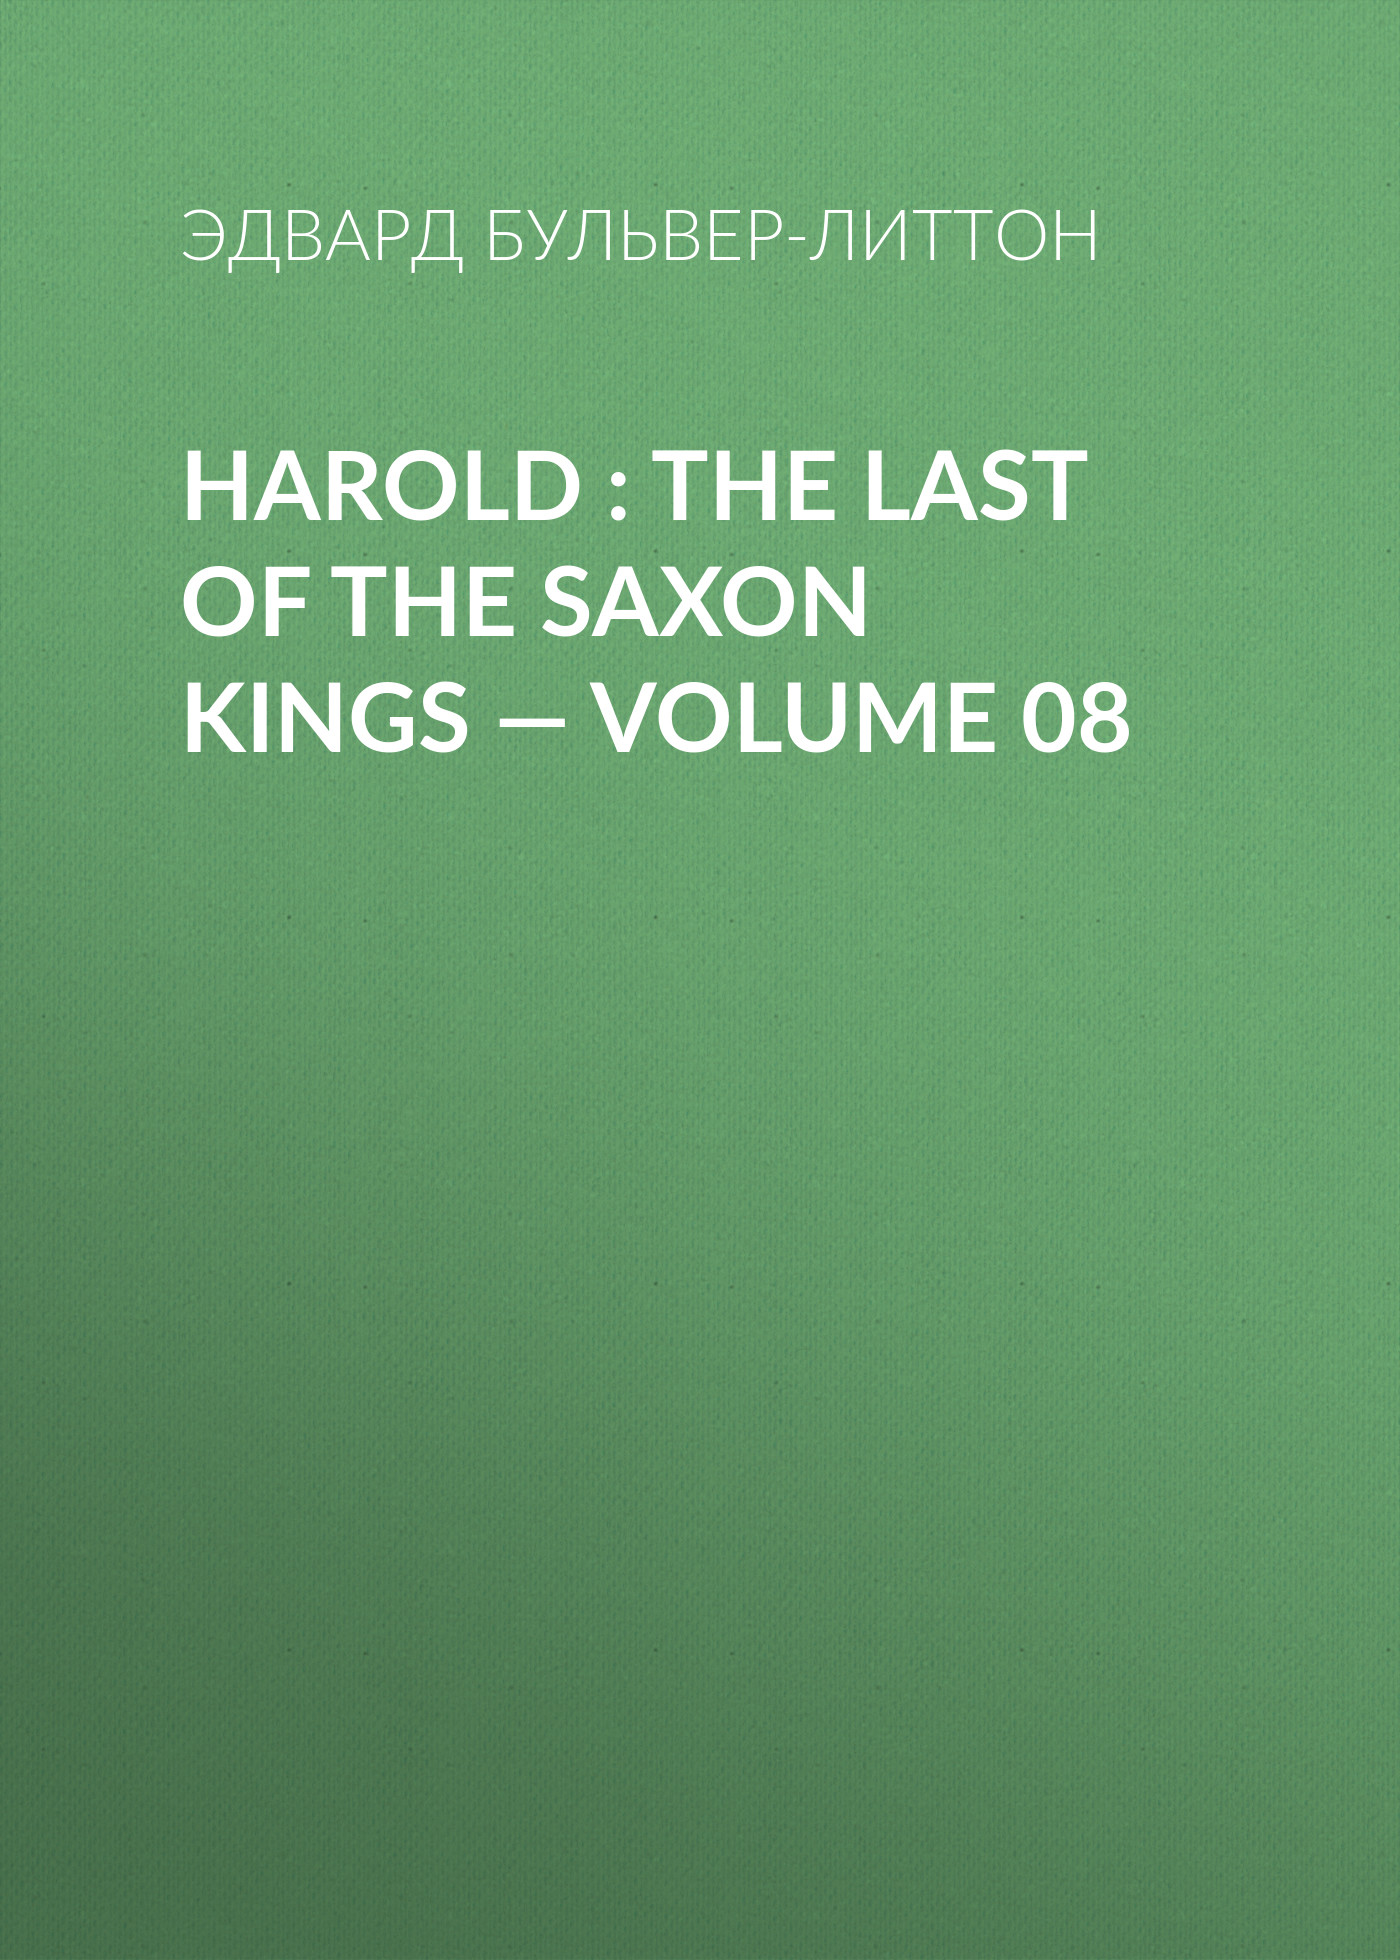 Эдвард Бульвер-Литтон Harold : the Last of the Saxon Kings — Volume 08 эдвард бульвер литтон harold the last of the saxon kings volume 06